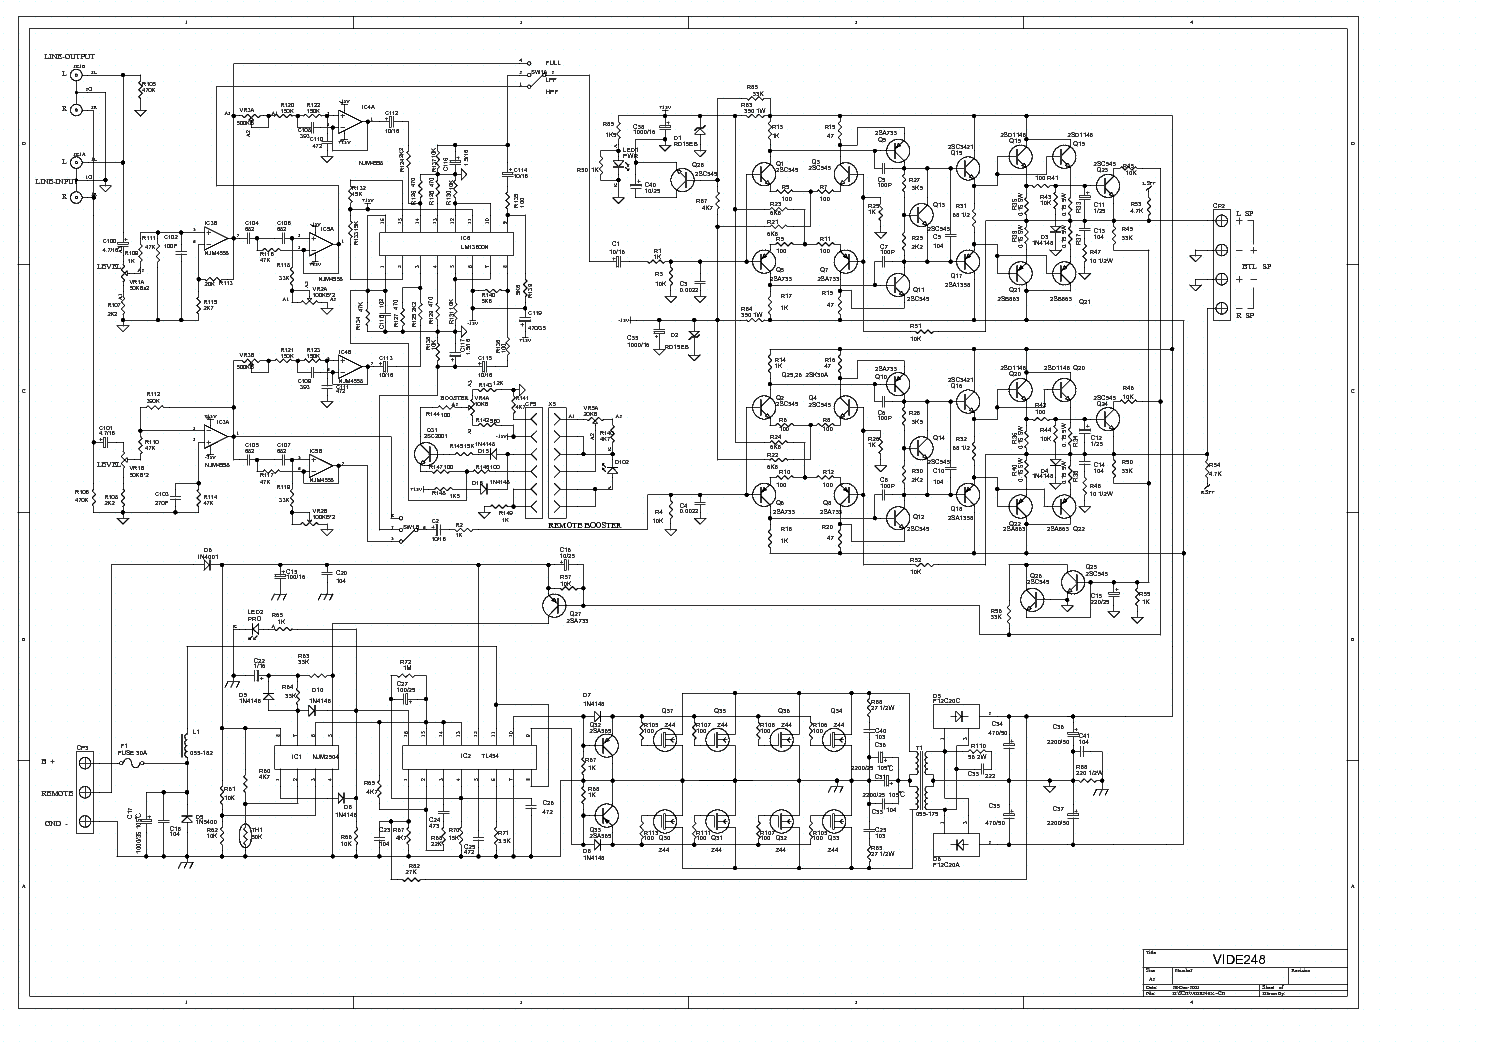 lanzar_vibe248_car_amplifier_sch.pdf_1 lanzar vibe248 car amplifier sch service manual download lanzar maxp124d wiring diagram at bayanpartner.co